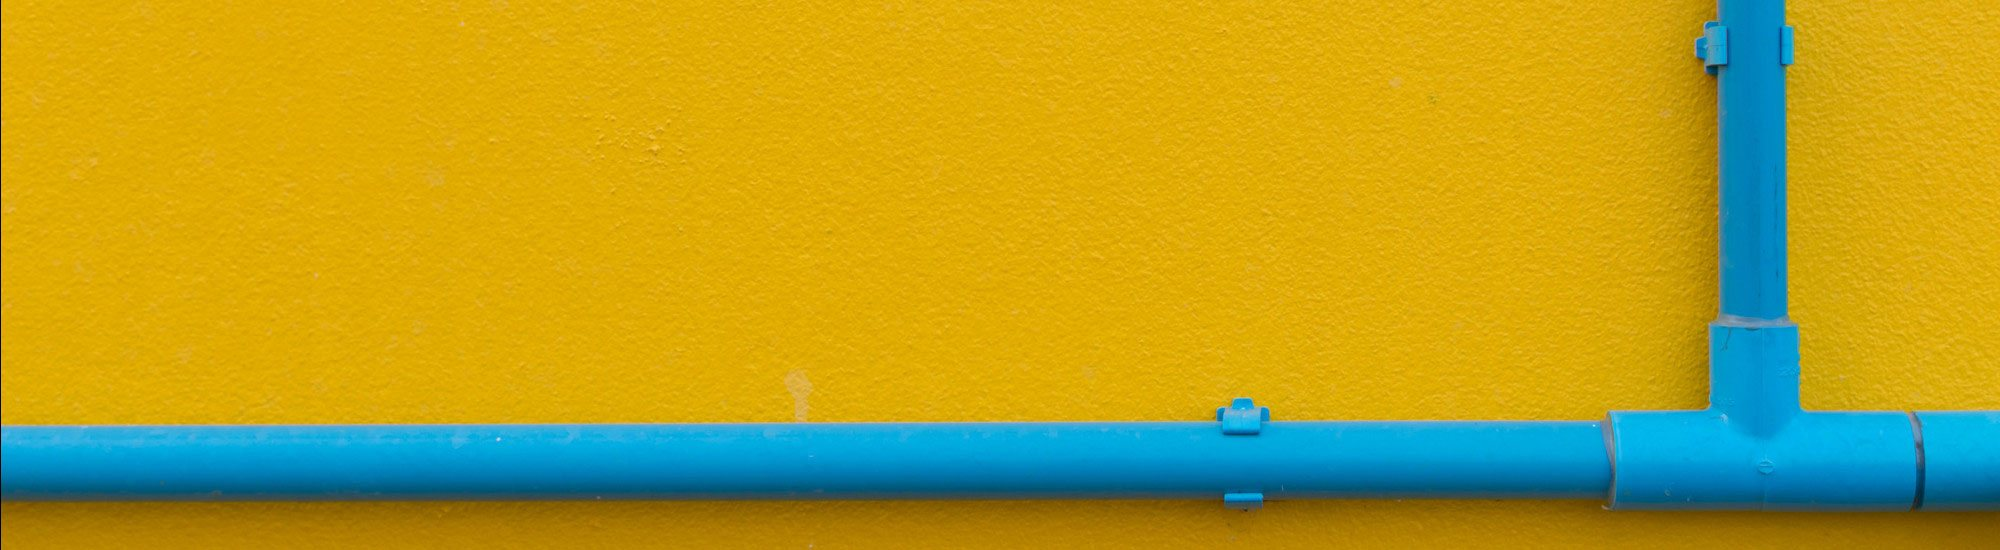 blue pipes over yellow wall